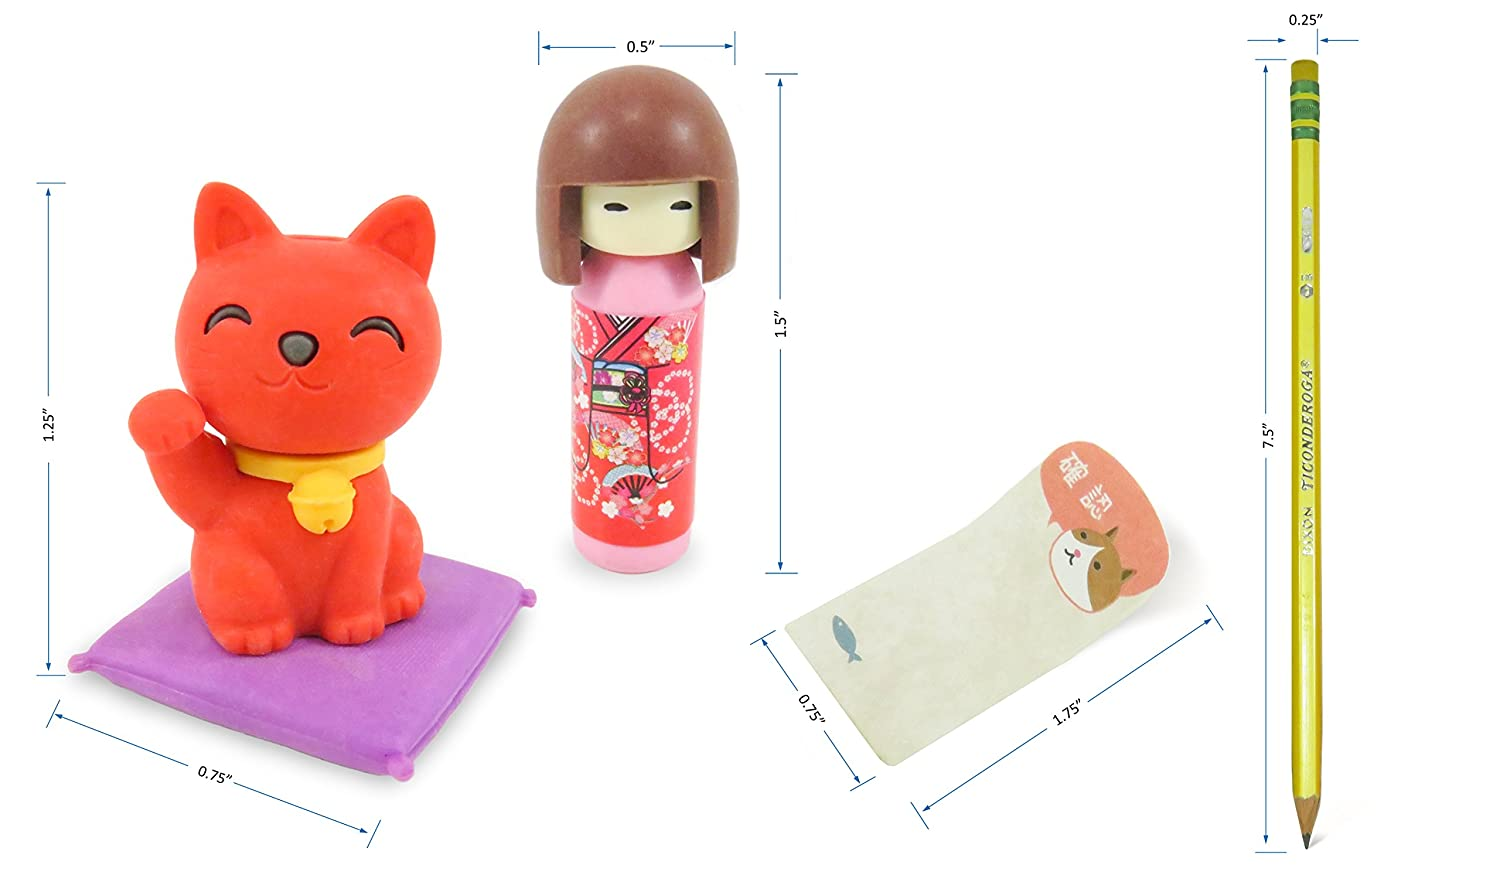 Cat and Doll Japanese Mini Puzzle Erasers 7 with Cat Page Markers Stickers 90 and Colorful Striped #2 Sharpened Pencils - Perfect 11 Piece Set for Kids Mixed 3